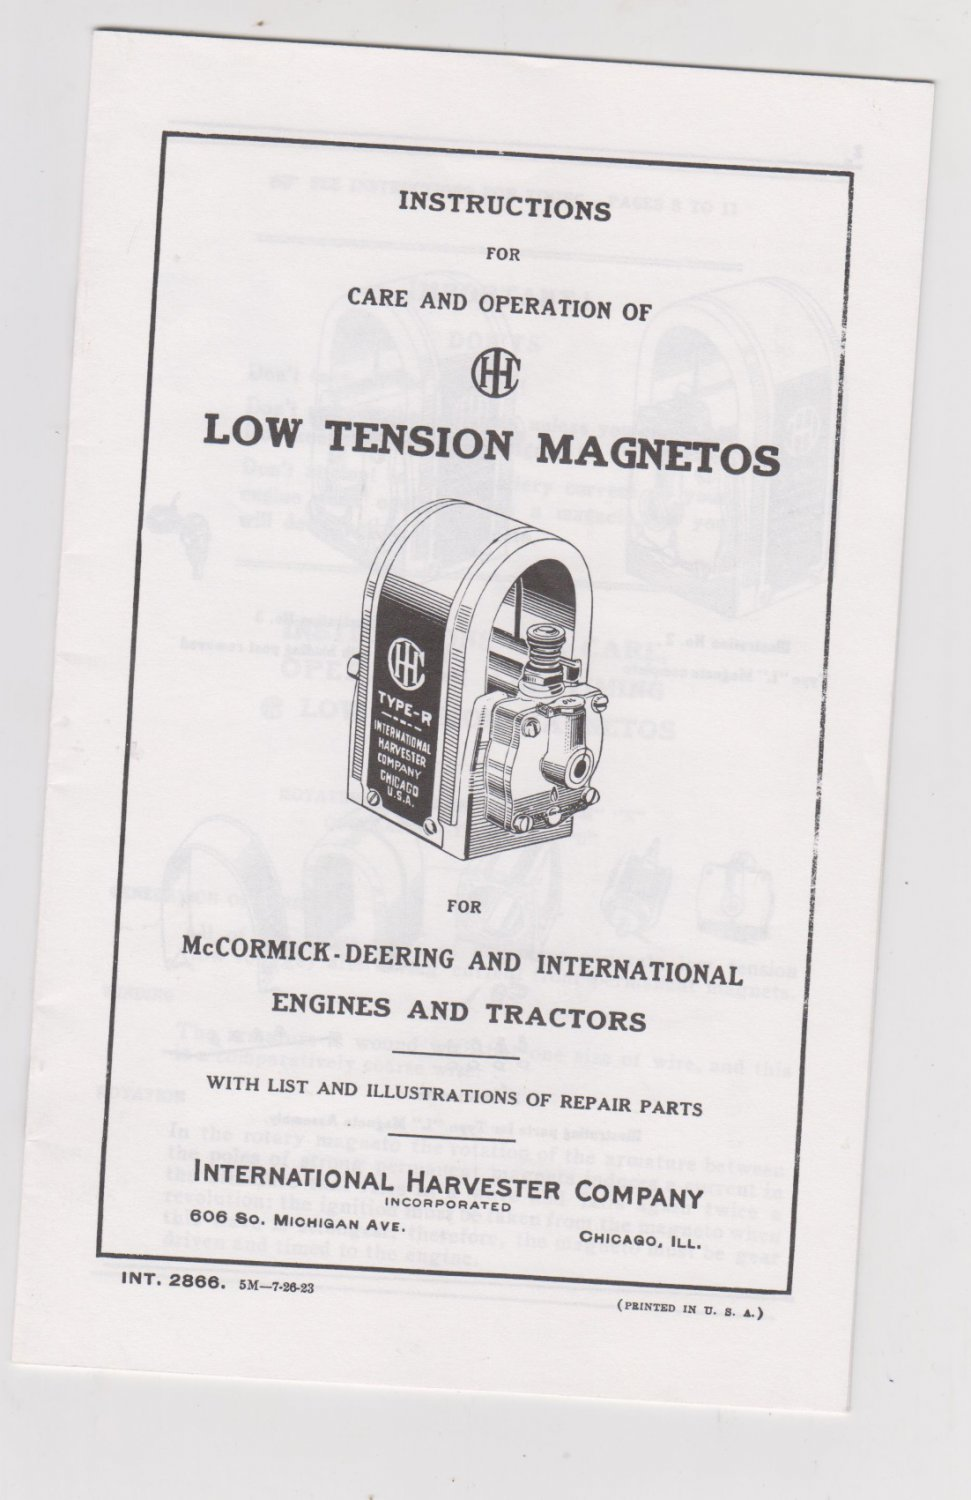 Instructions for Care and Operation of Low Tension Magnetos McCormick-Deering